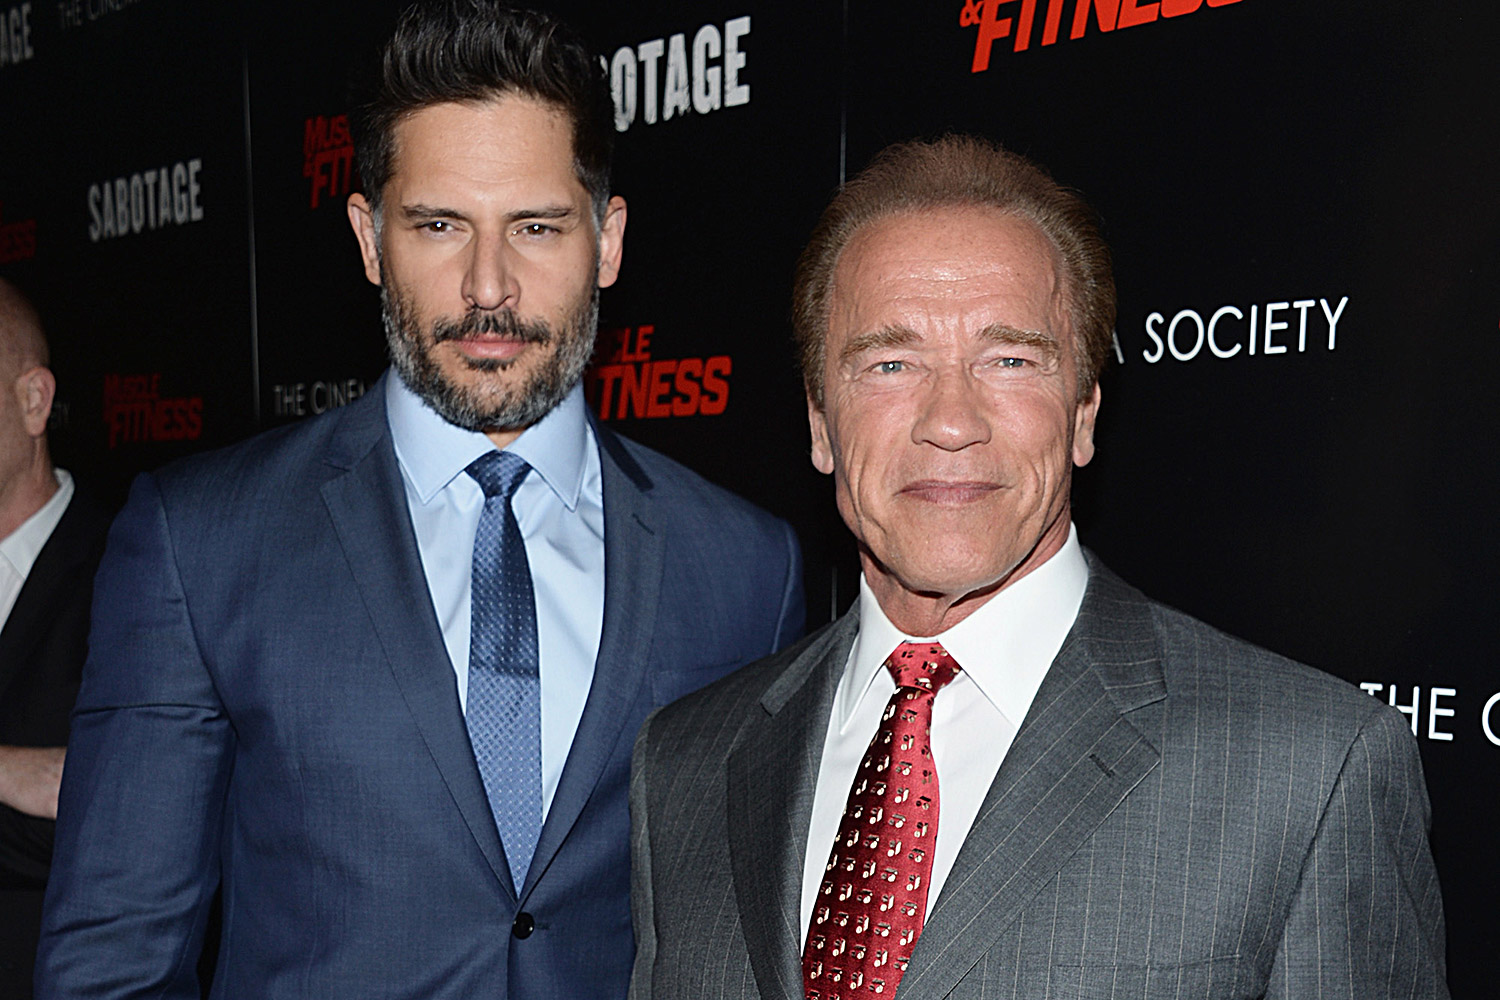 Joe Manganiello and Arnold Schwarzenegger